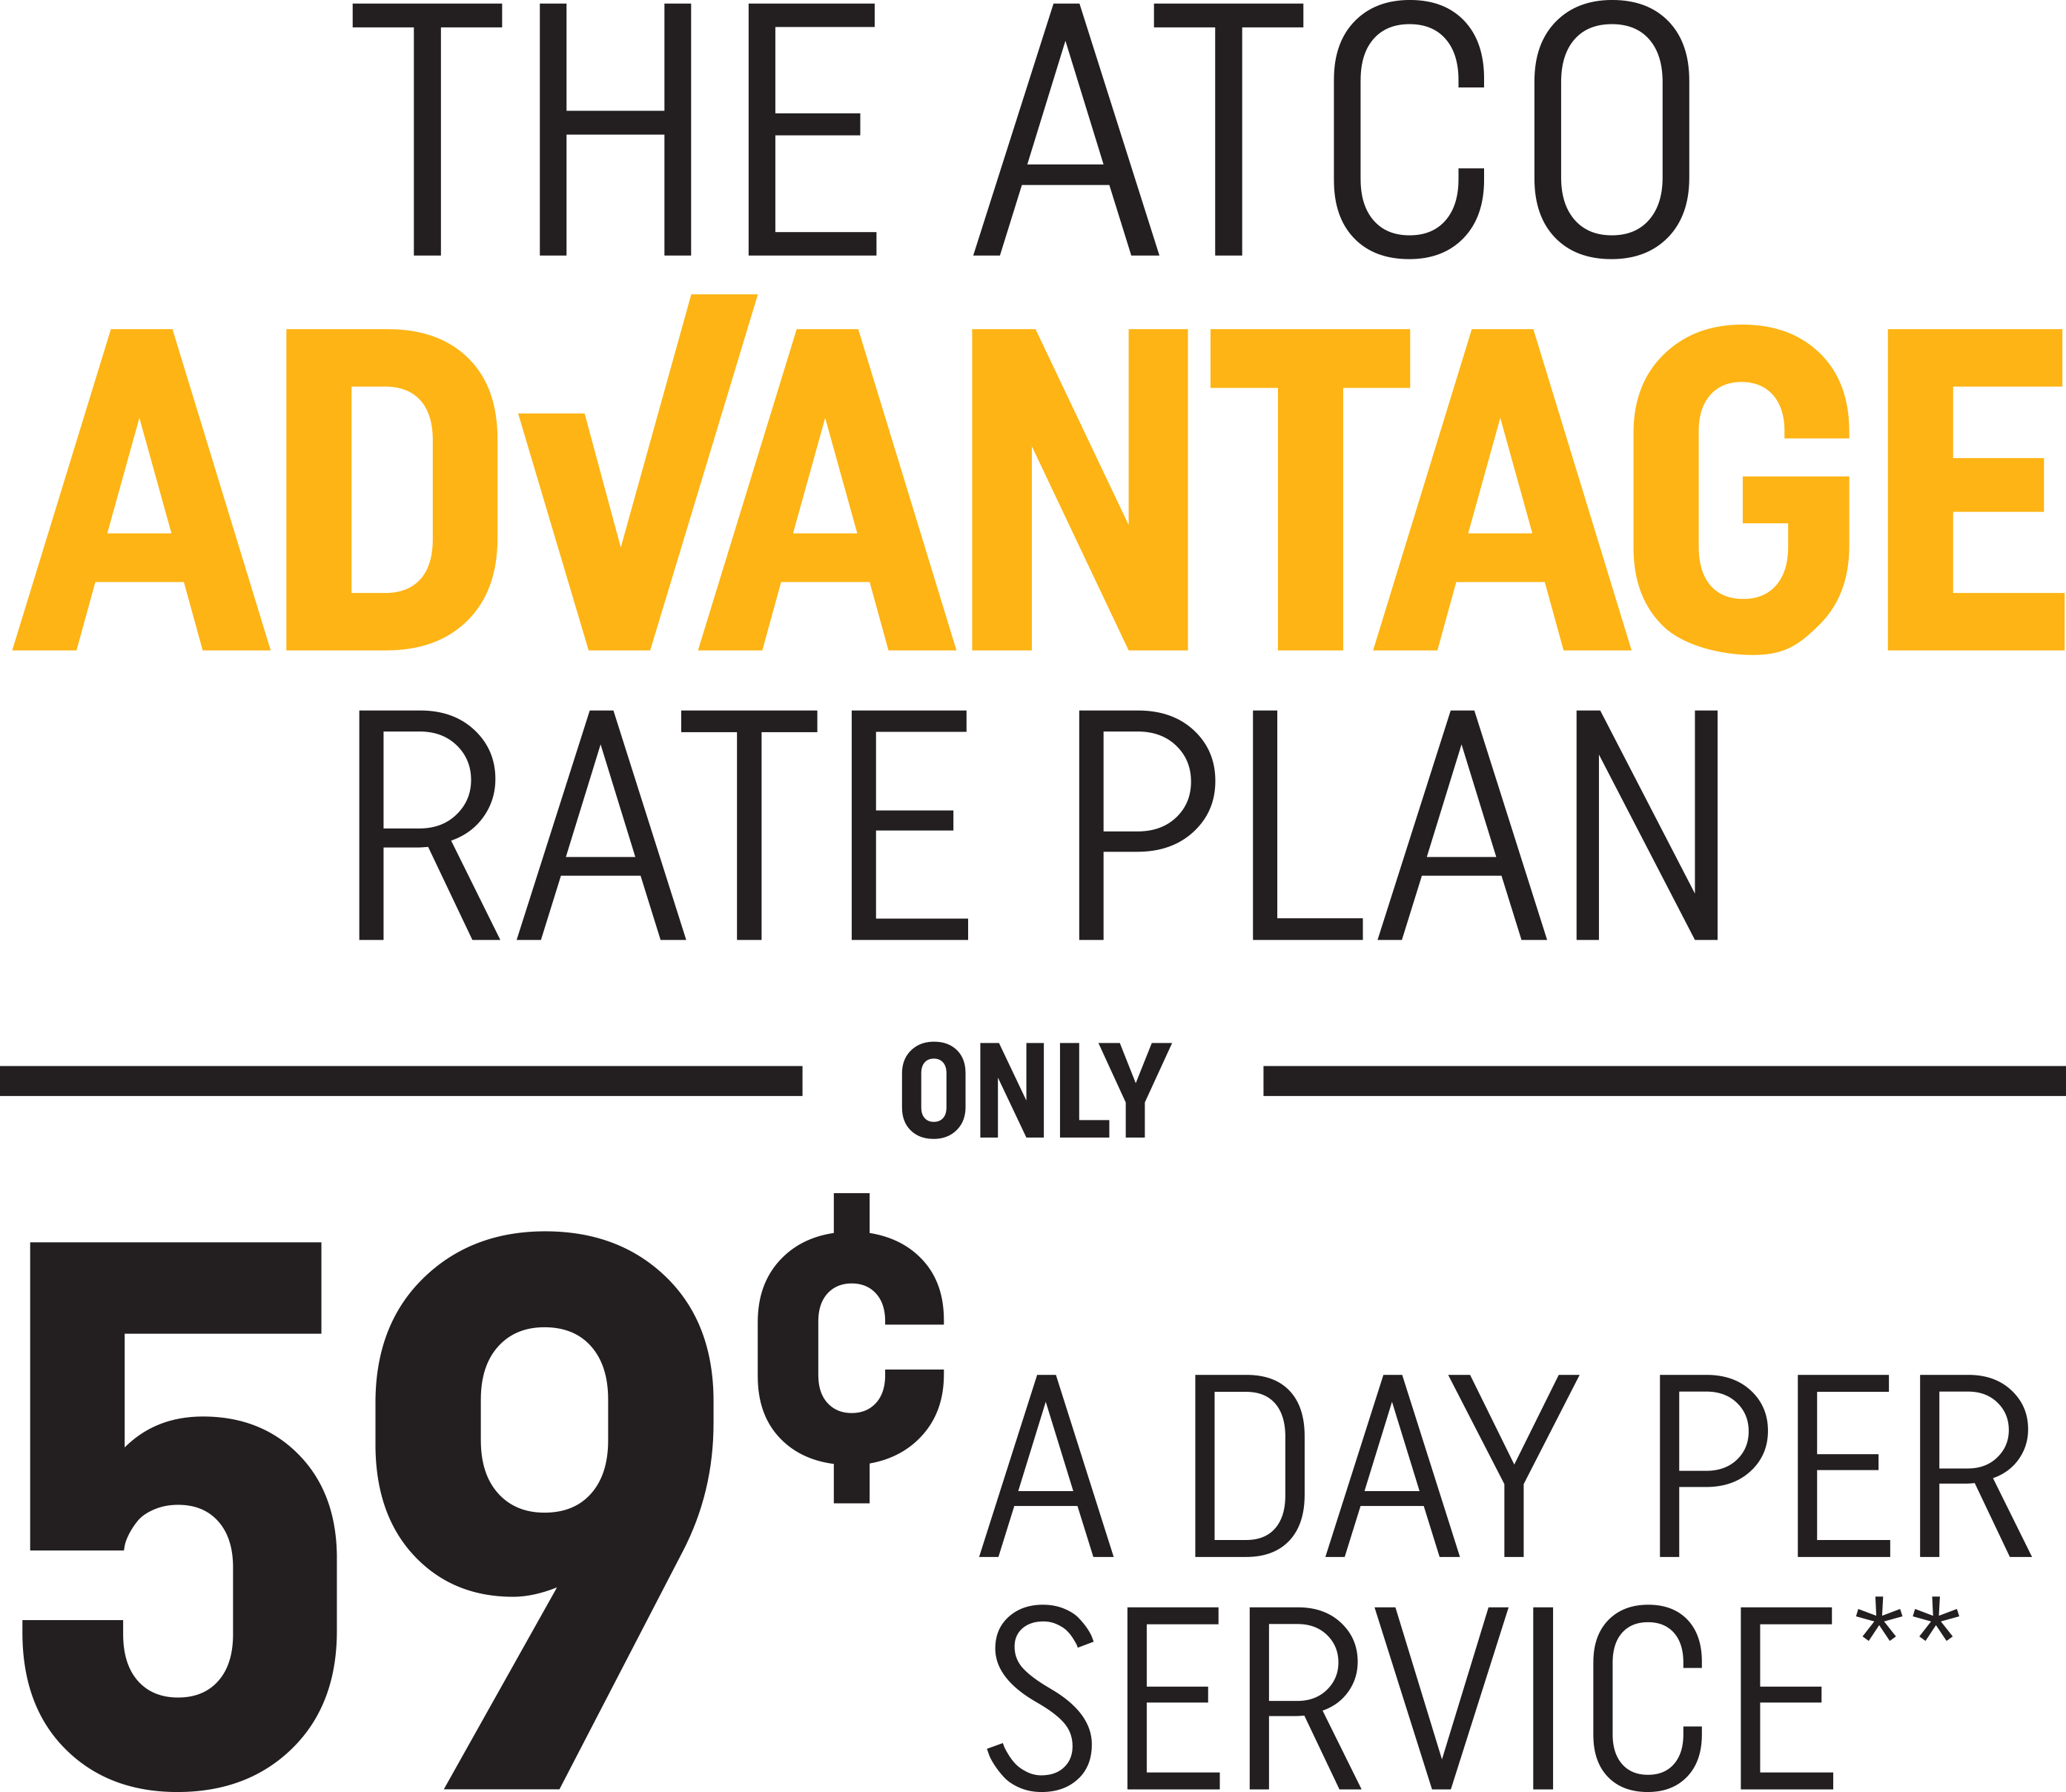 ATCO Advantage Rate Plan